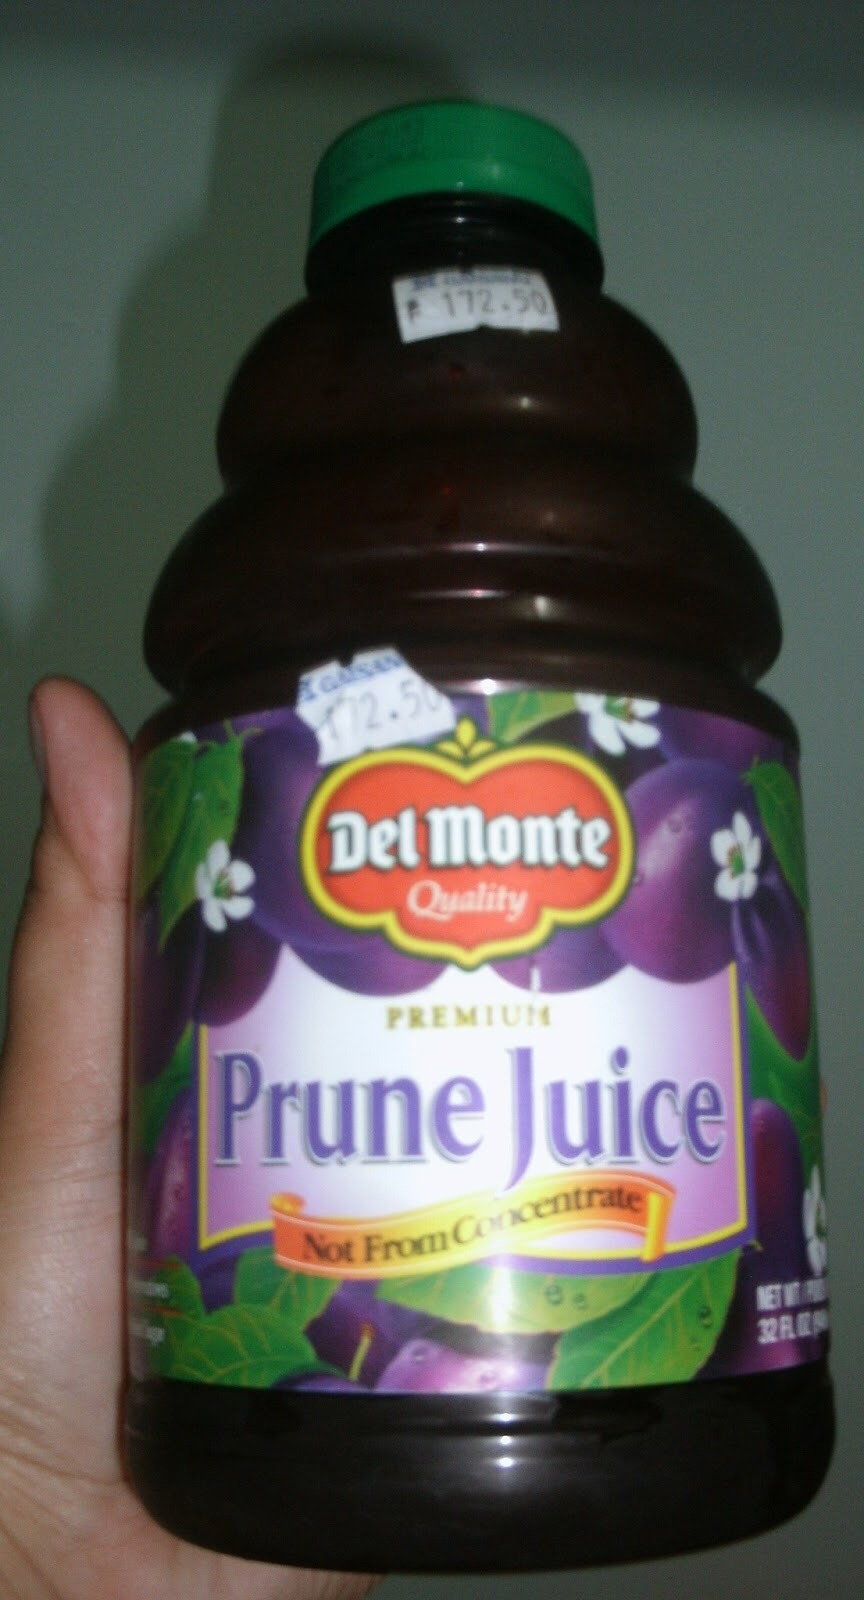 It is suggested to drink one glass of prune juice in the morning, and one glass of prune juice at night to relieve constipation. Prune juice is not a quick acting laxative, so when drinking prune juice keep in mind that it will start working to move your bowels within a few hours.